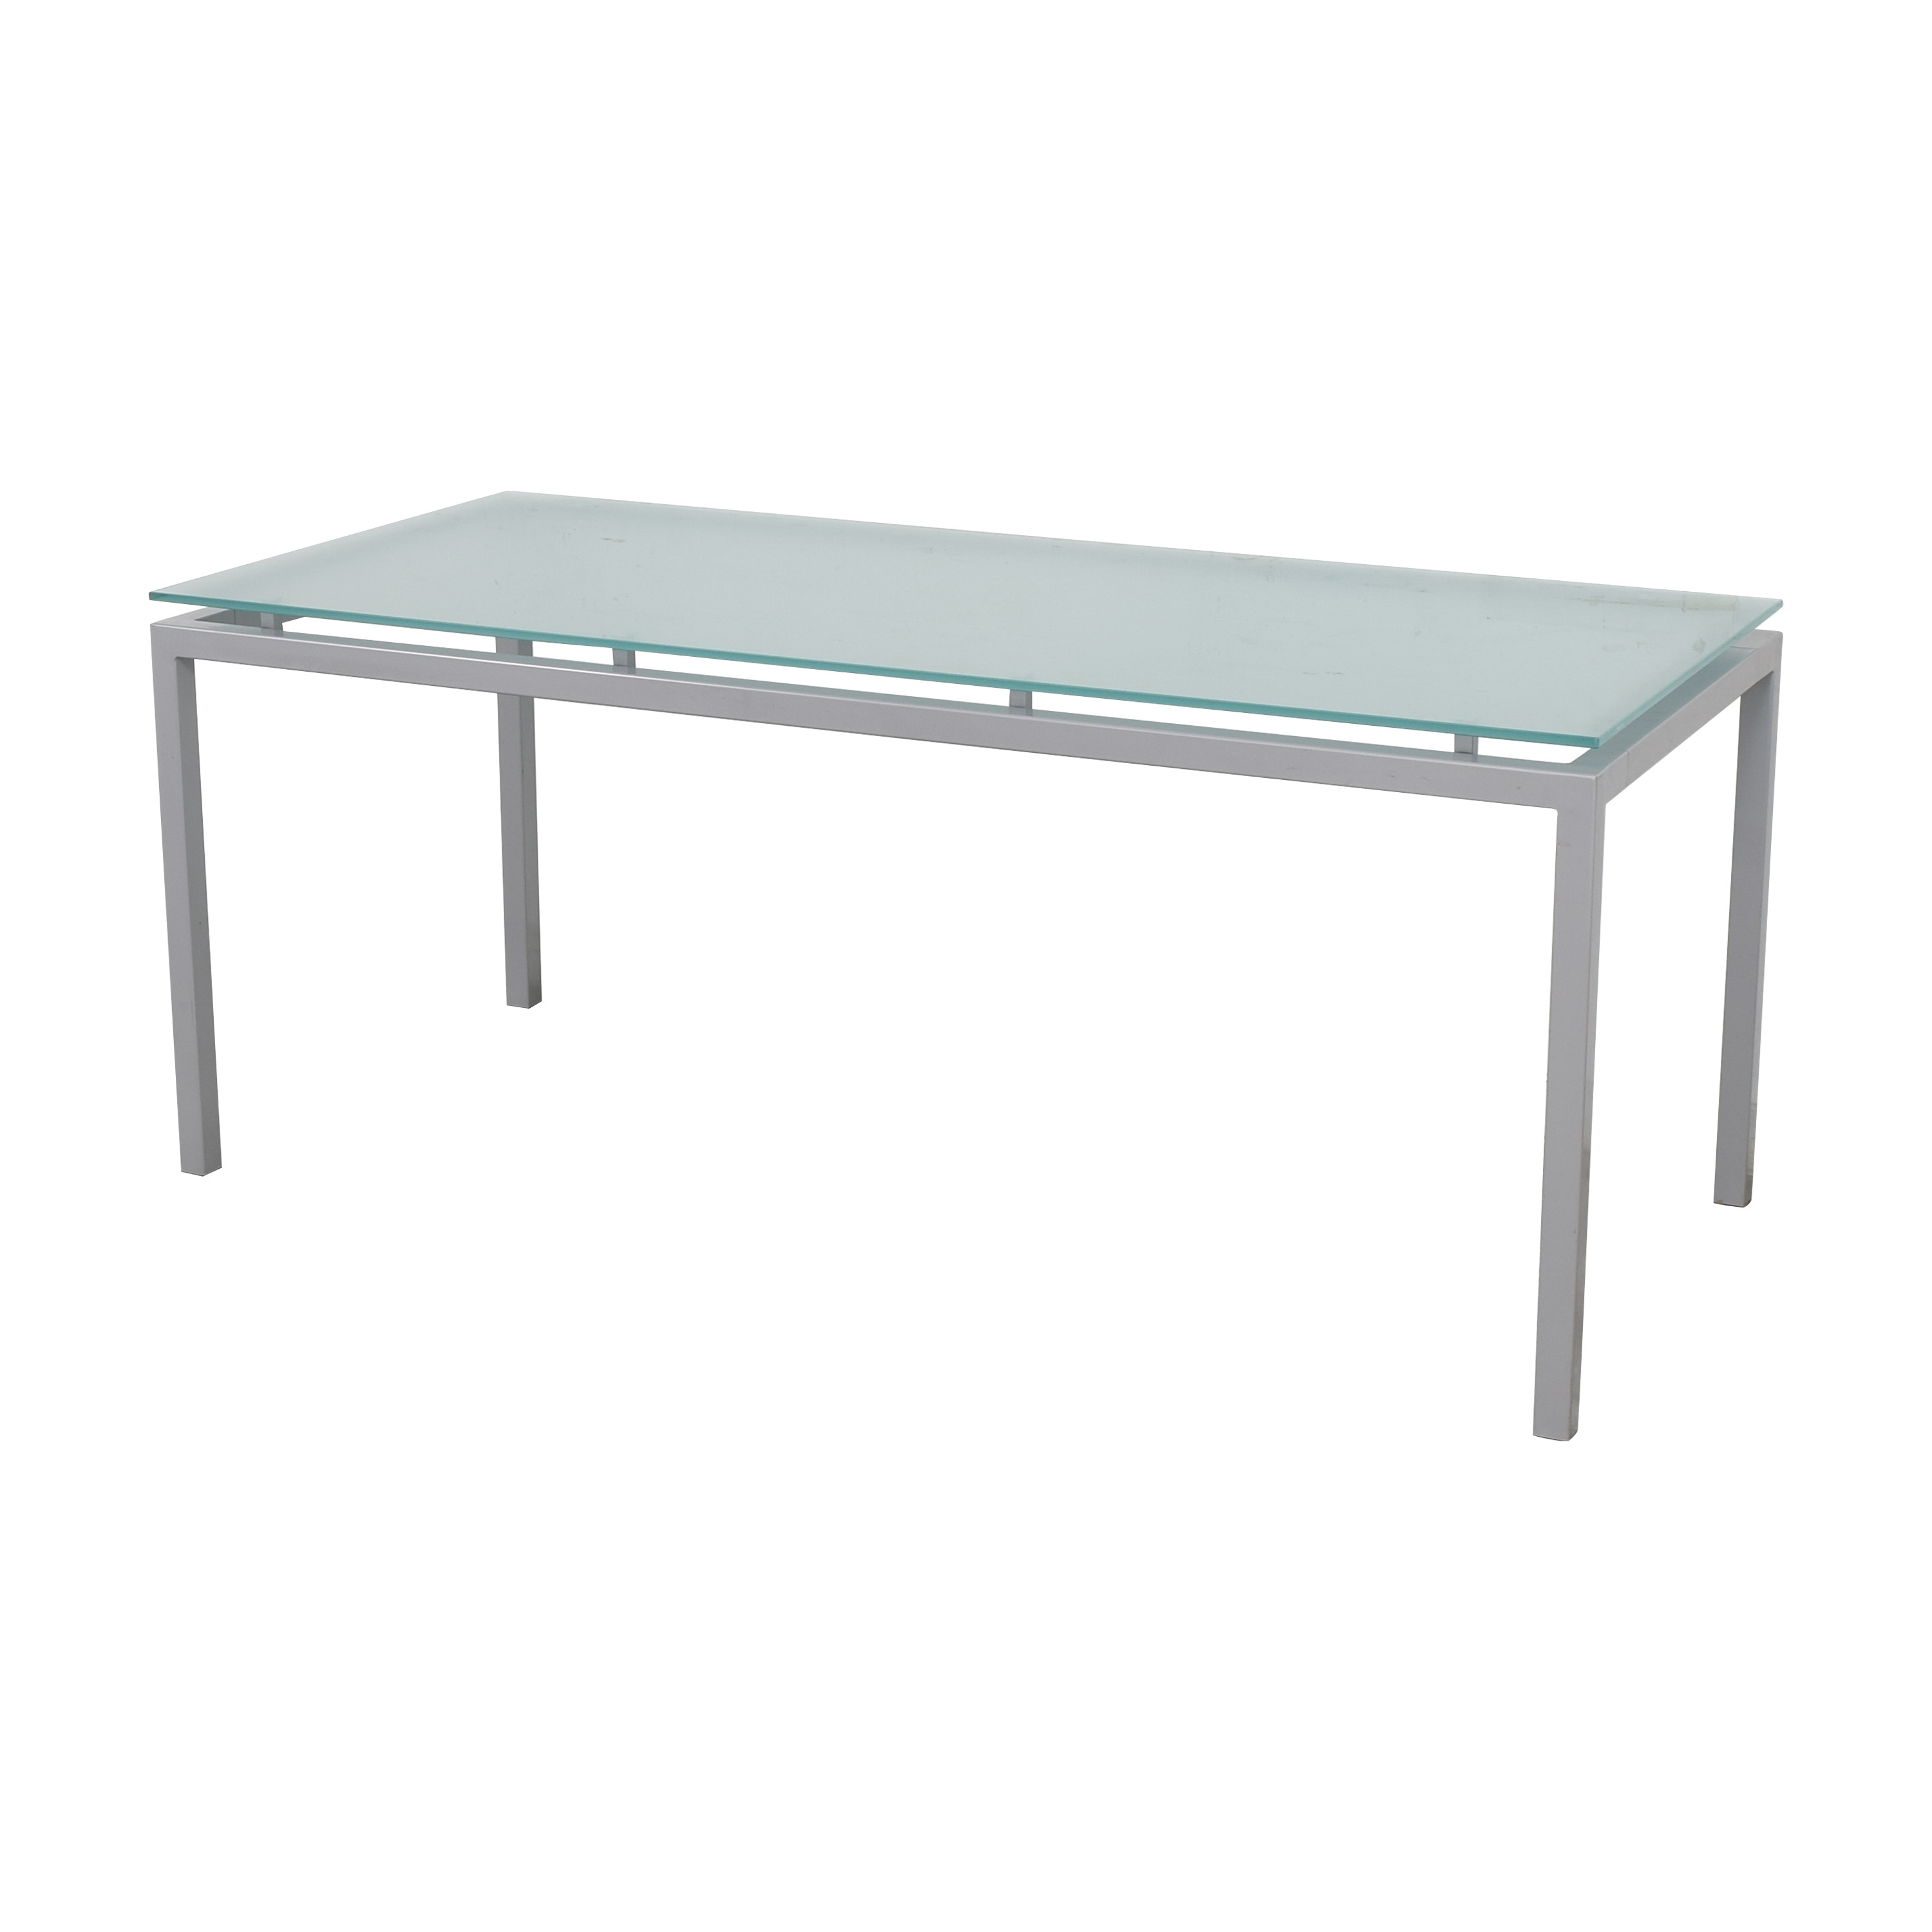 Room & Board Room & Board Dining Table with Floating Frosted Surface Tables